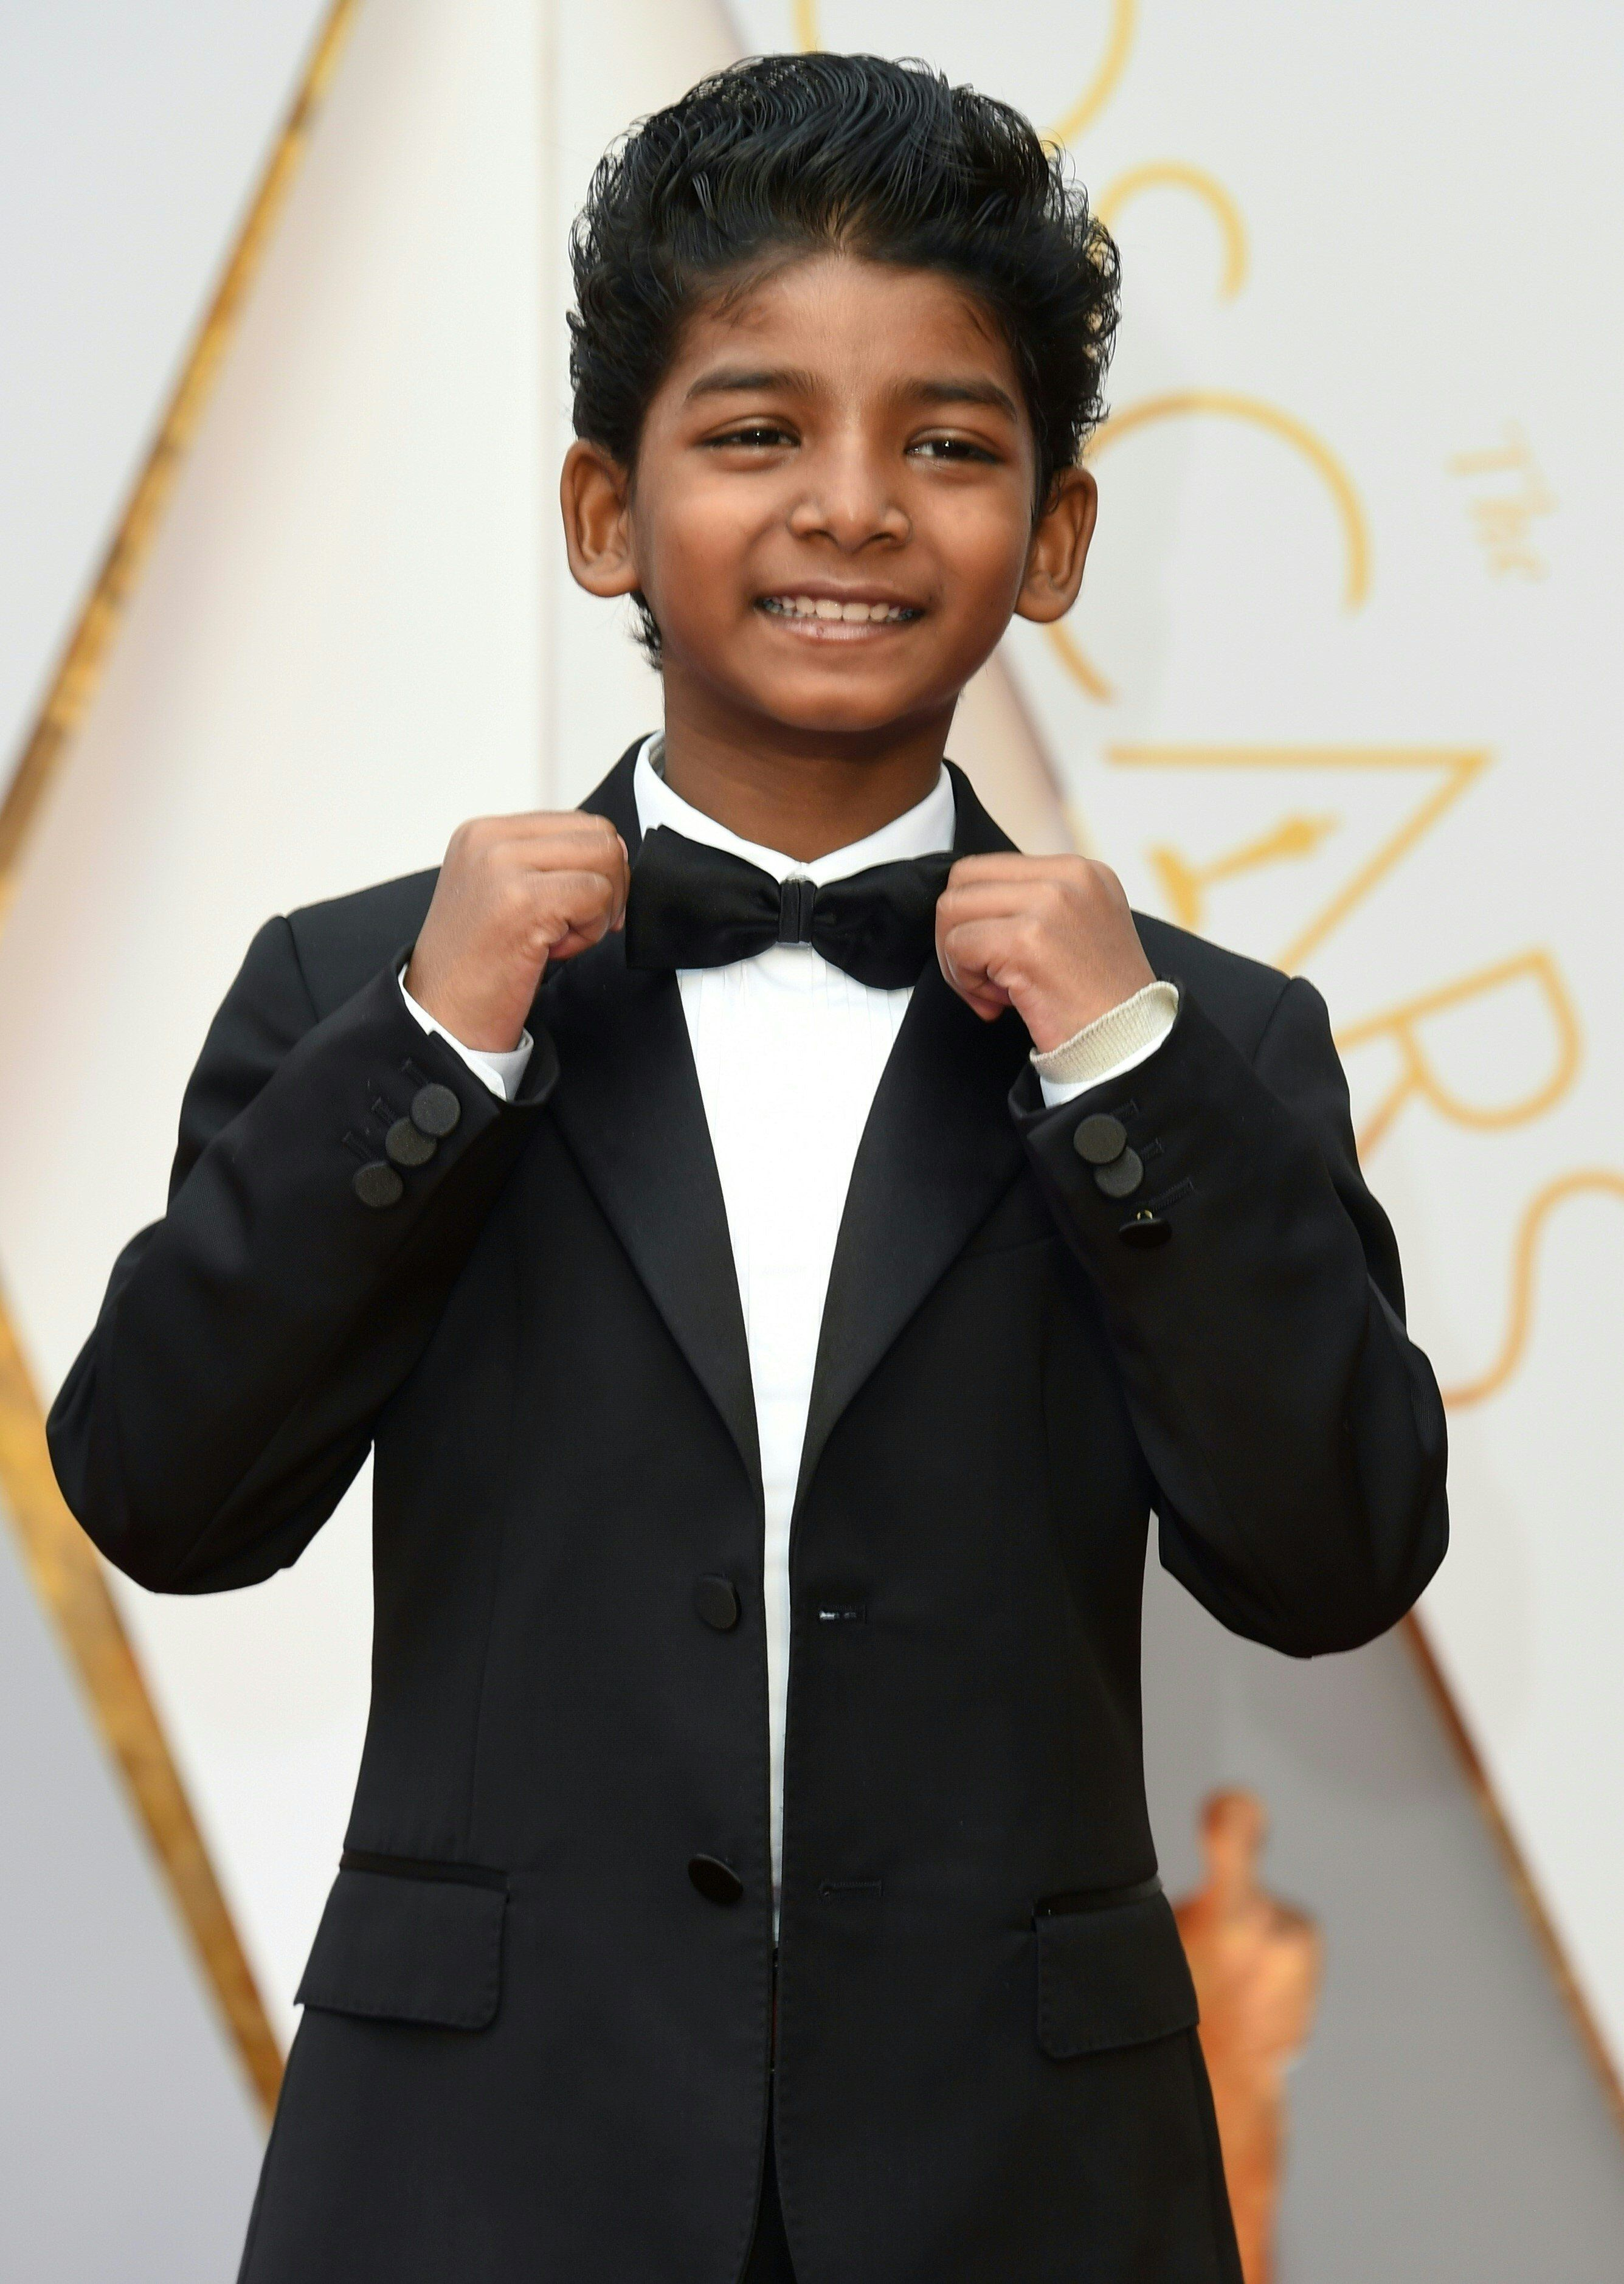 Sunny Pawar arrives on the red carpet for the 89th Oscars.